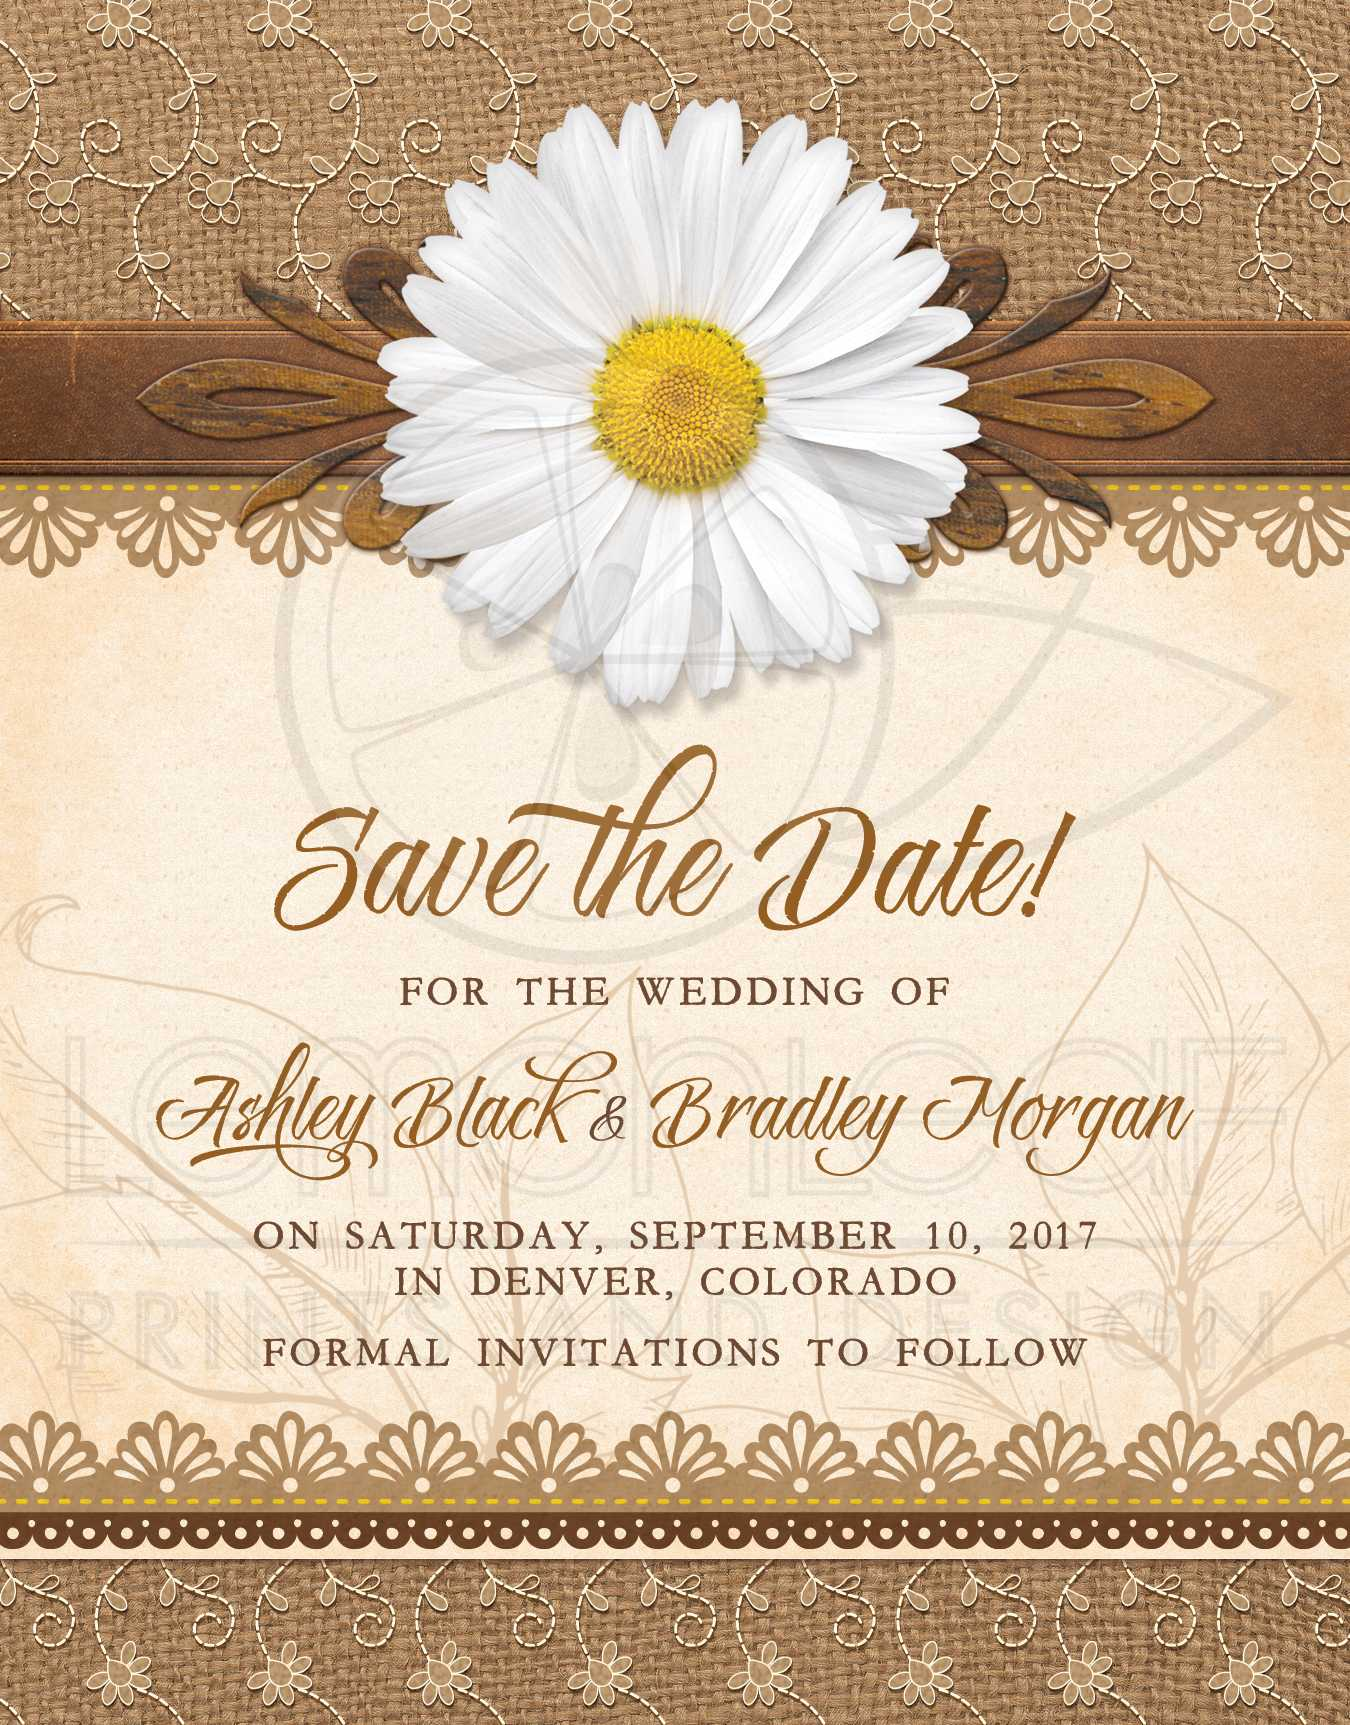 Rustic Daisy Wedding Save the Date Burlap Lace Wood